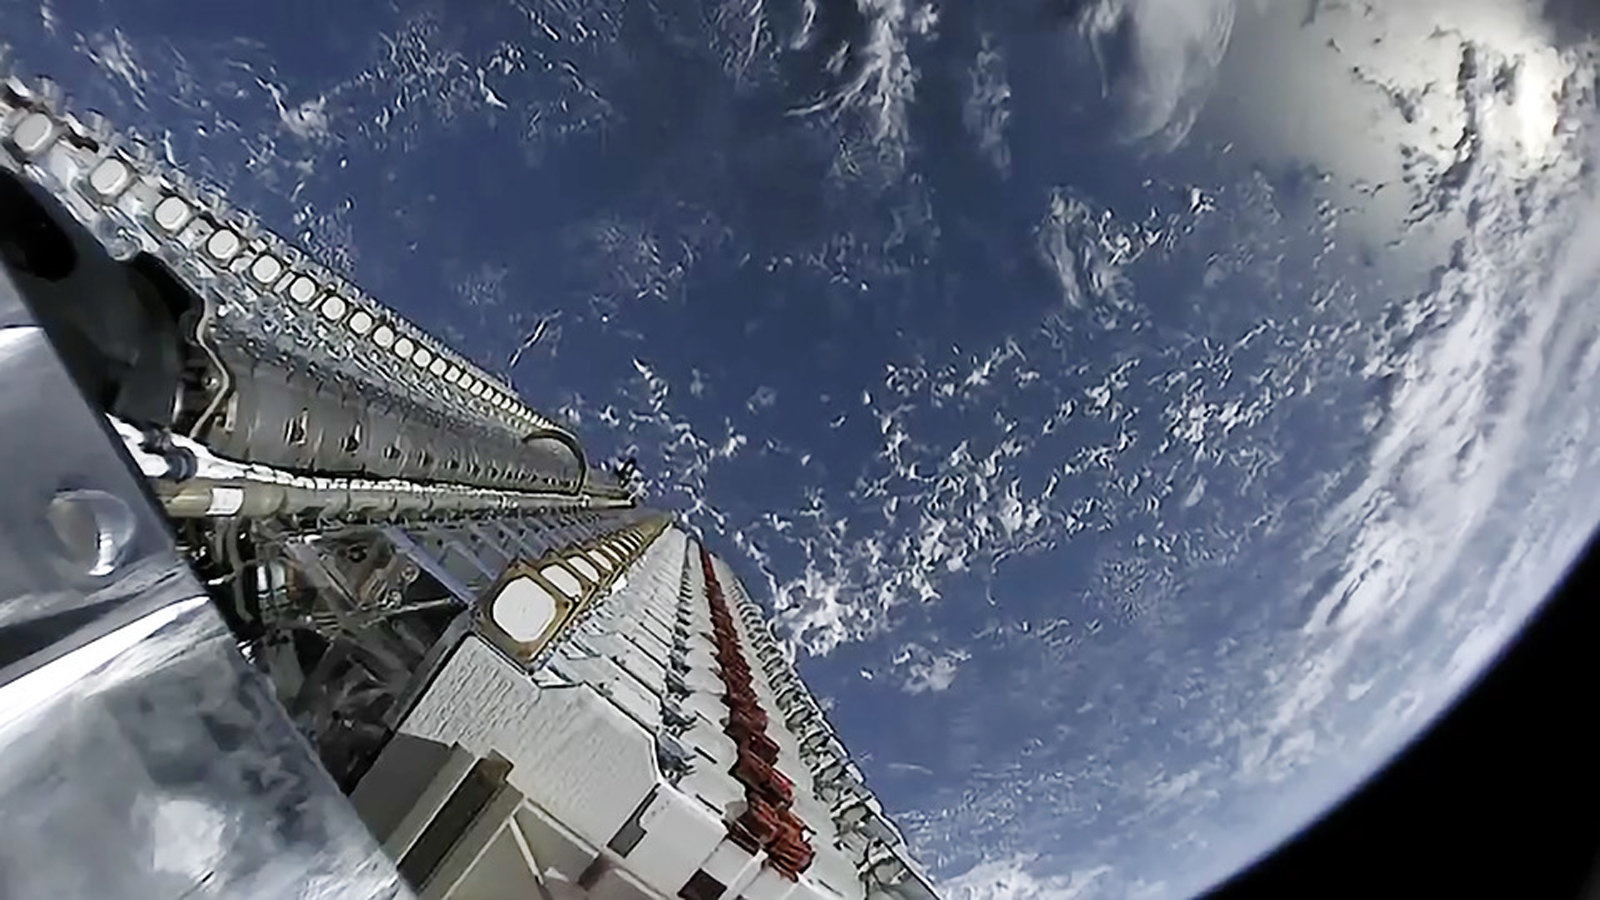 The internet satellite of SpaceX can create trouble for the astronauts